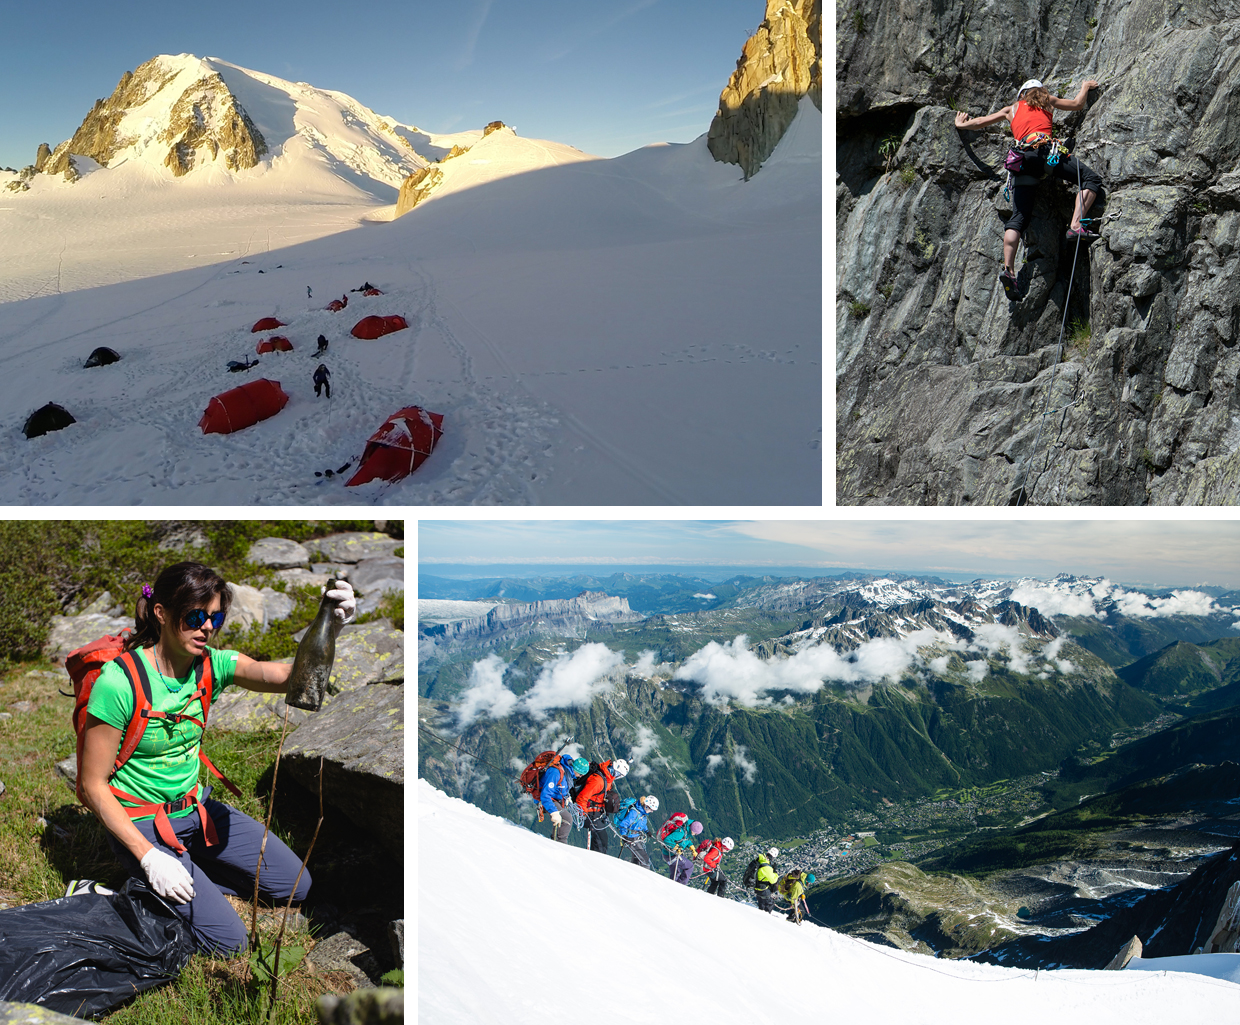 Arc'teryx Alpine Academy returns to the Alps